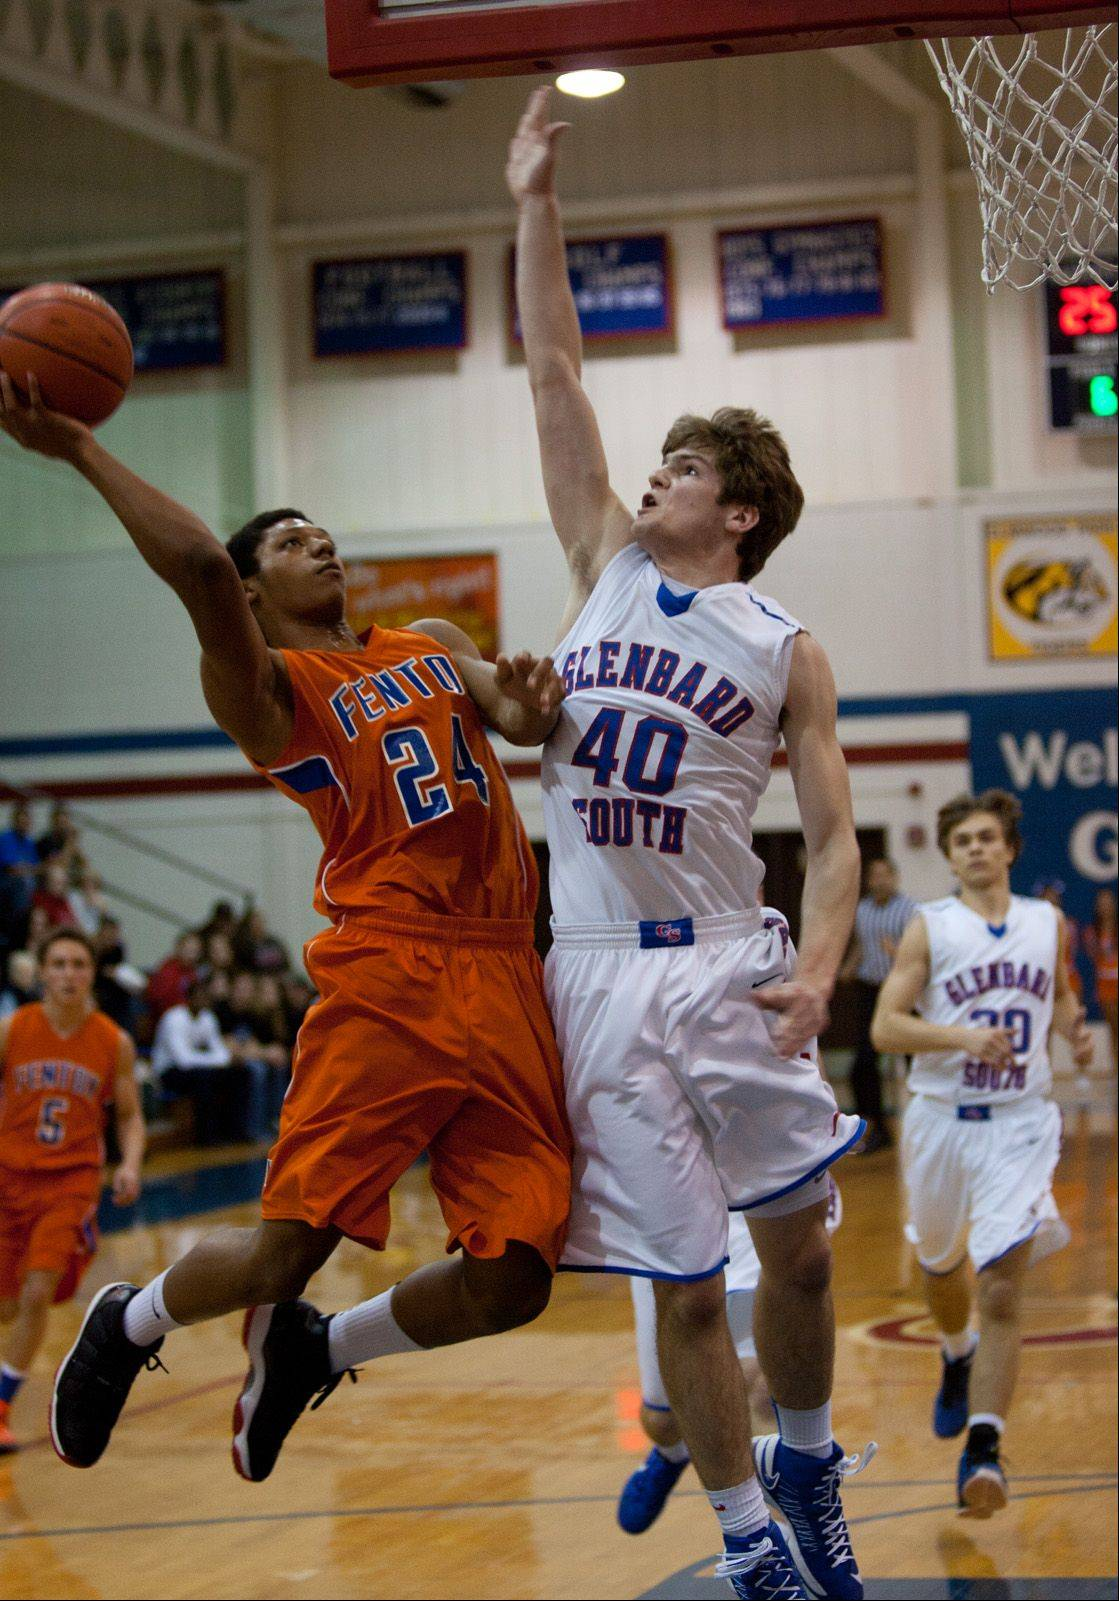 Fenton's DeMarcus Stone shoots over Glenbard South's John Marks .